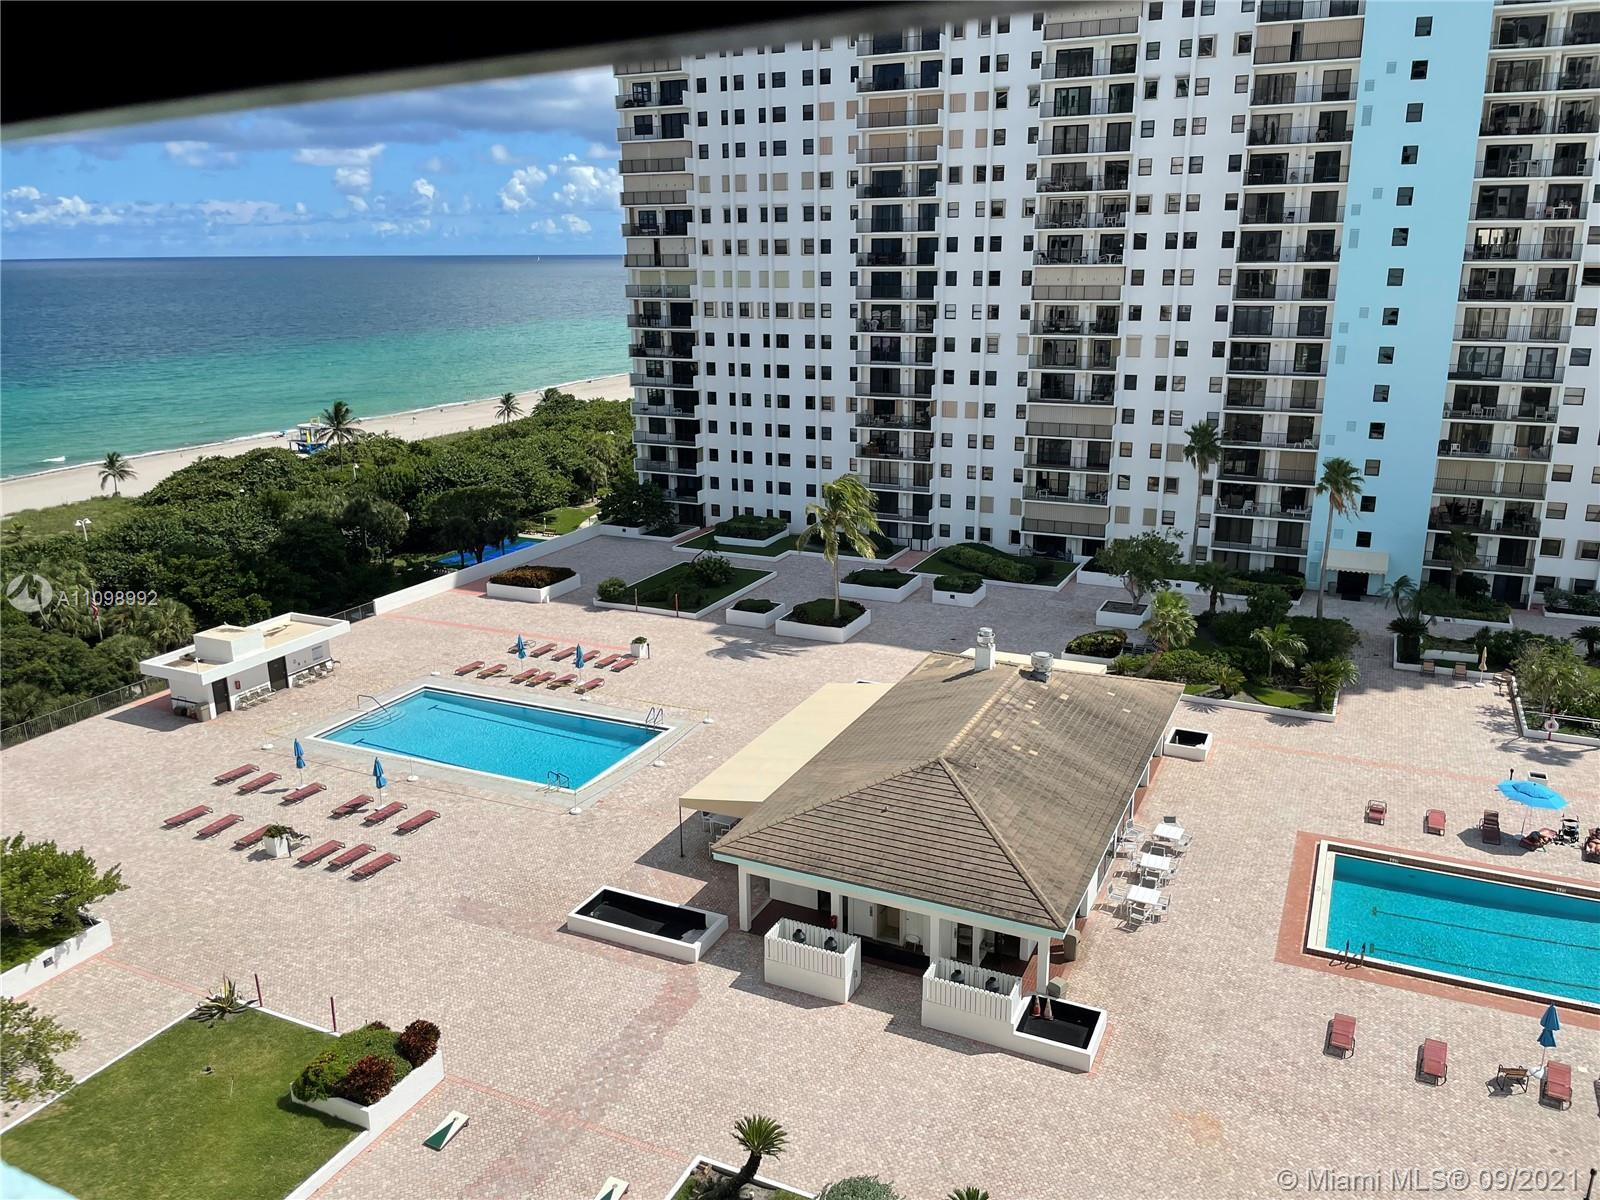 Large 1,120 square feet 1 bed room with Long Double Balcony at the Beachfront Building. Open Bright